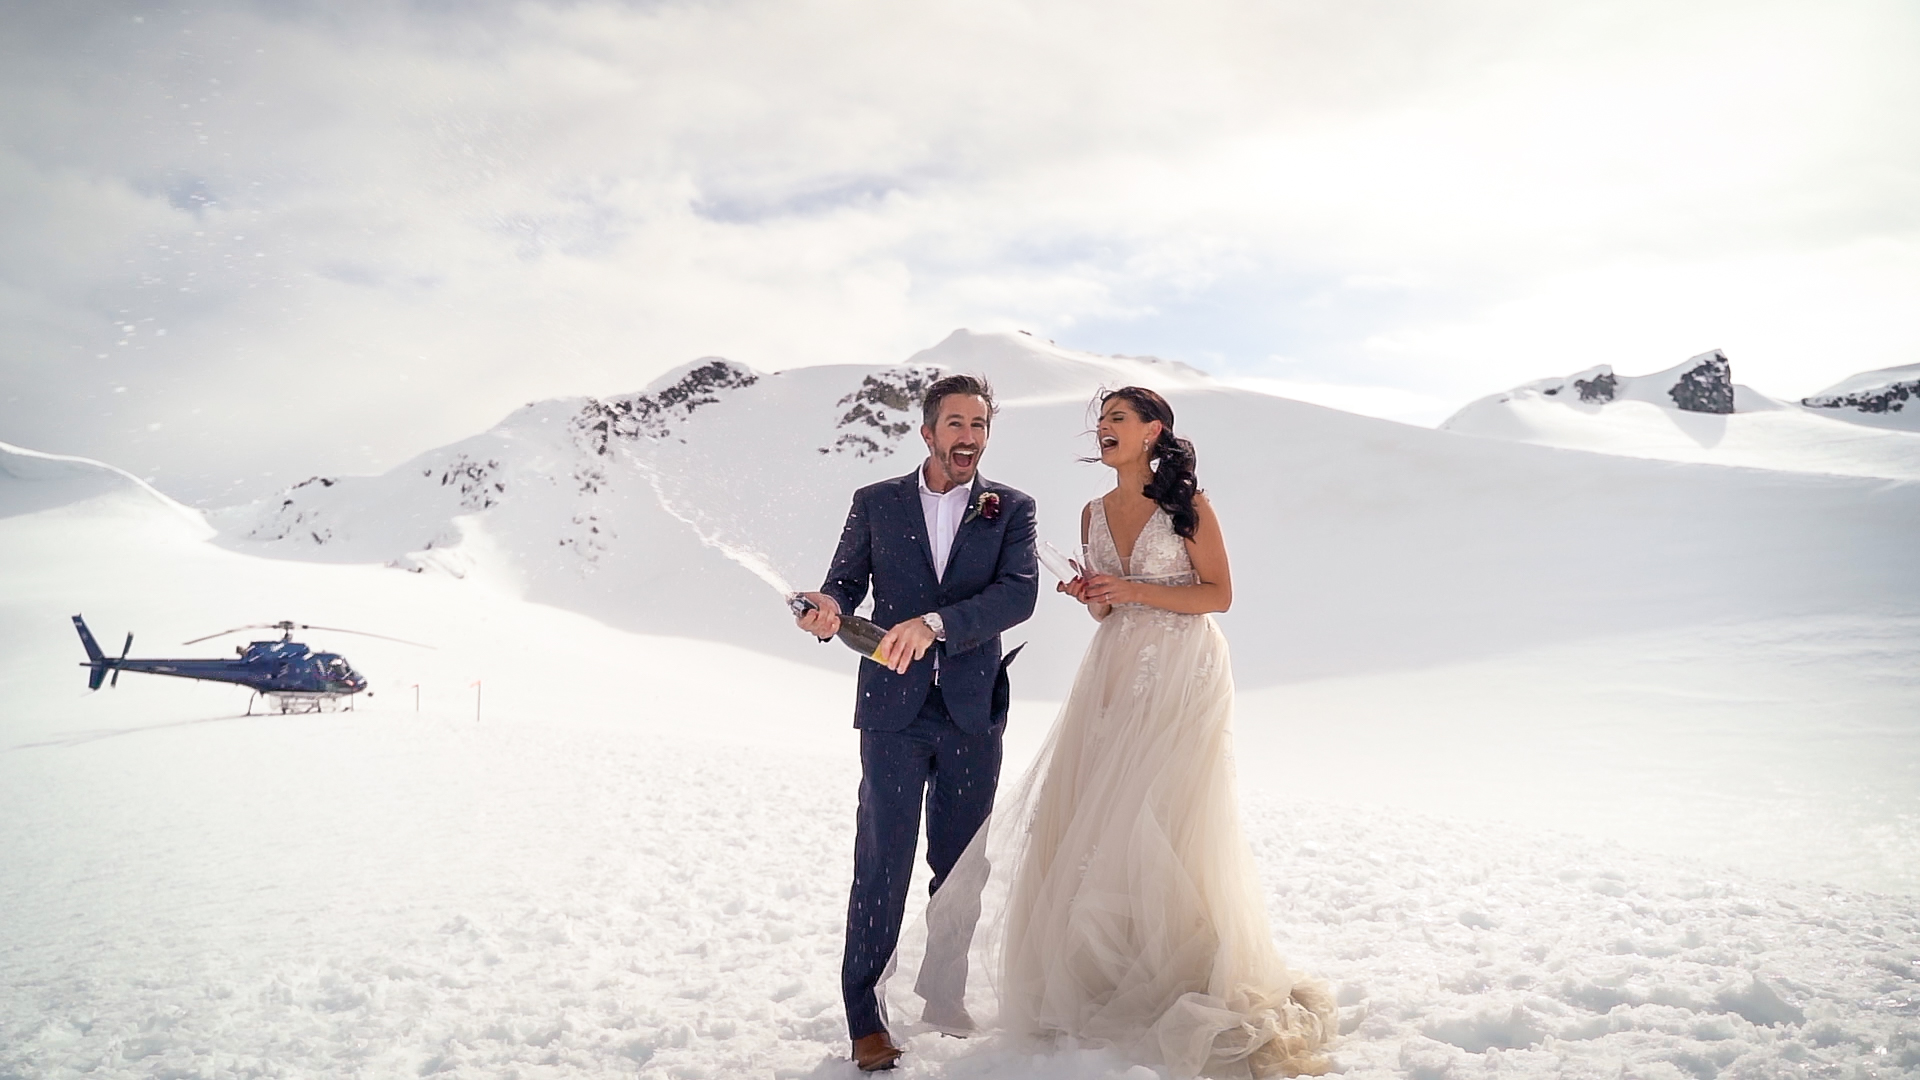 Couple popping champagne on snowy mountaintop